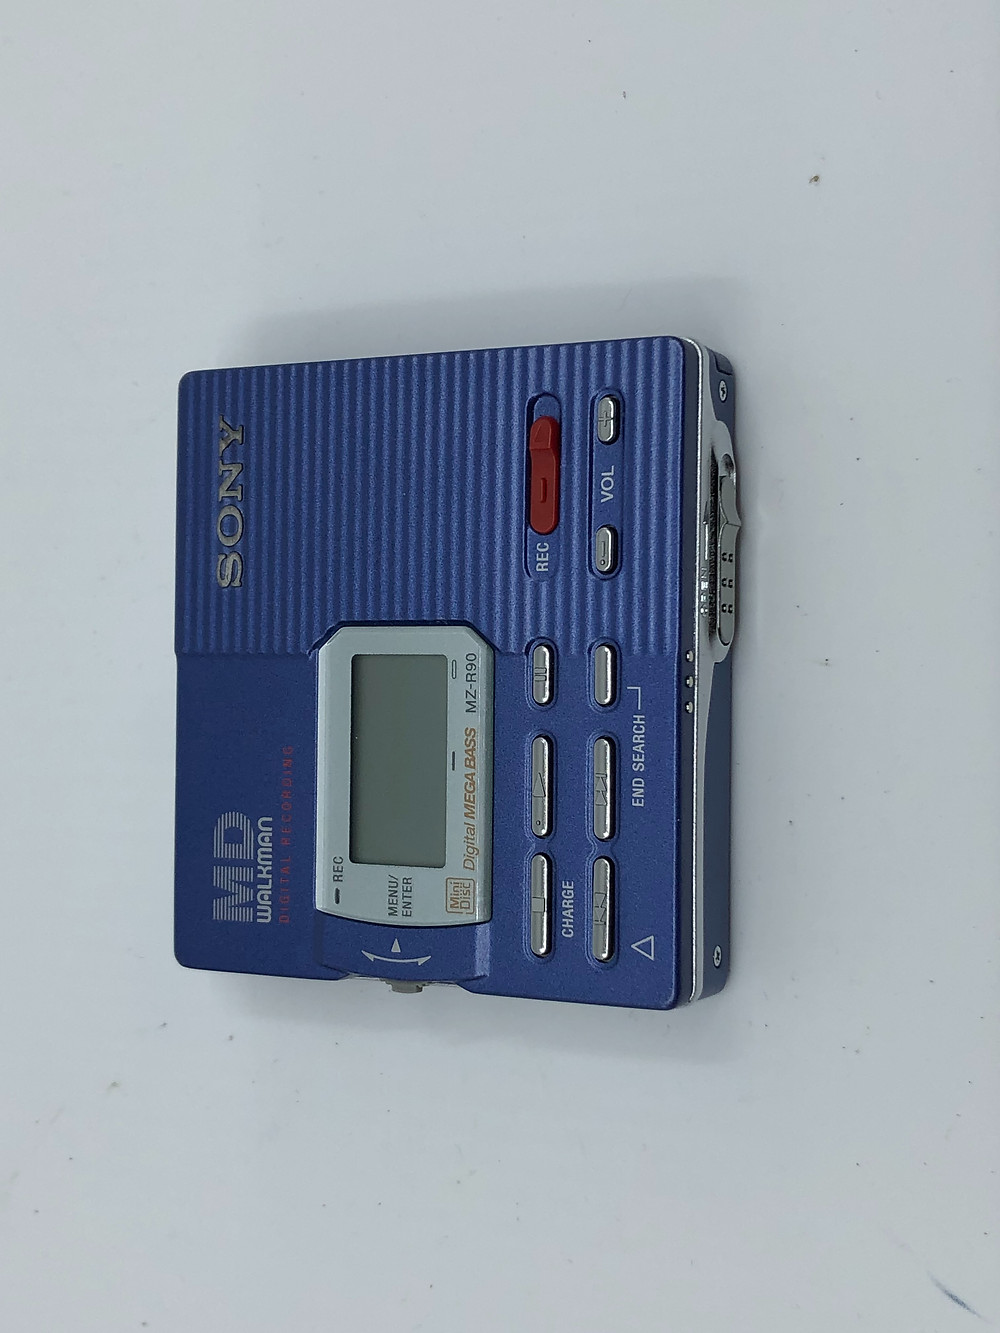 Sony MZ-R90 Blue MD Recorder